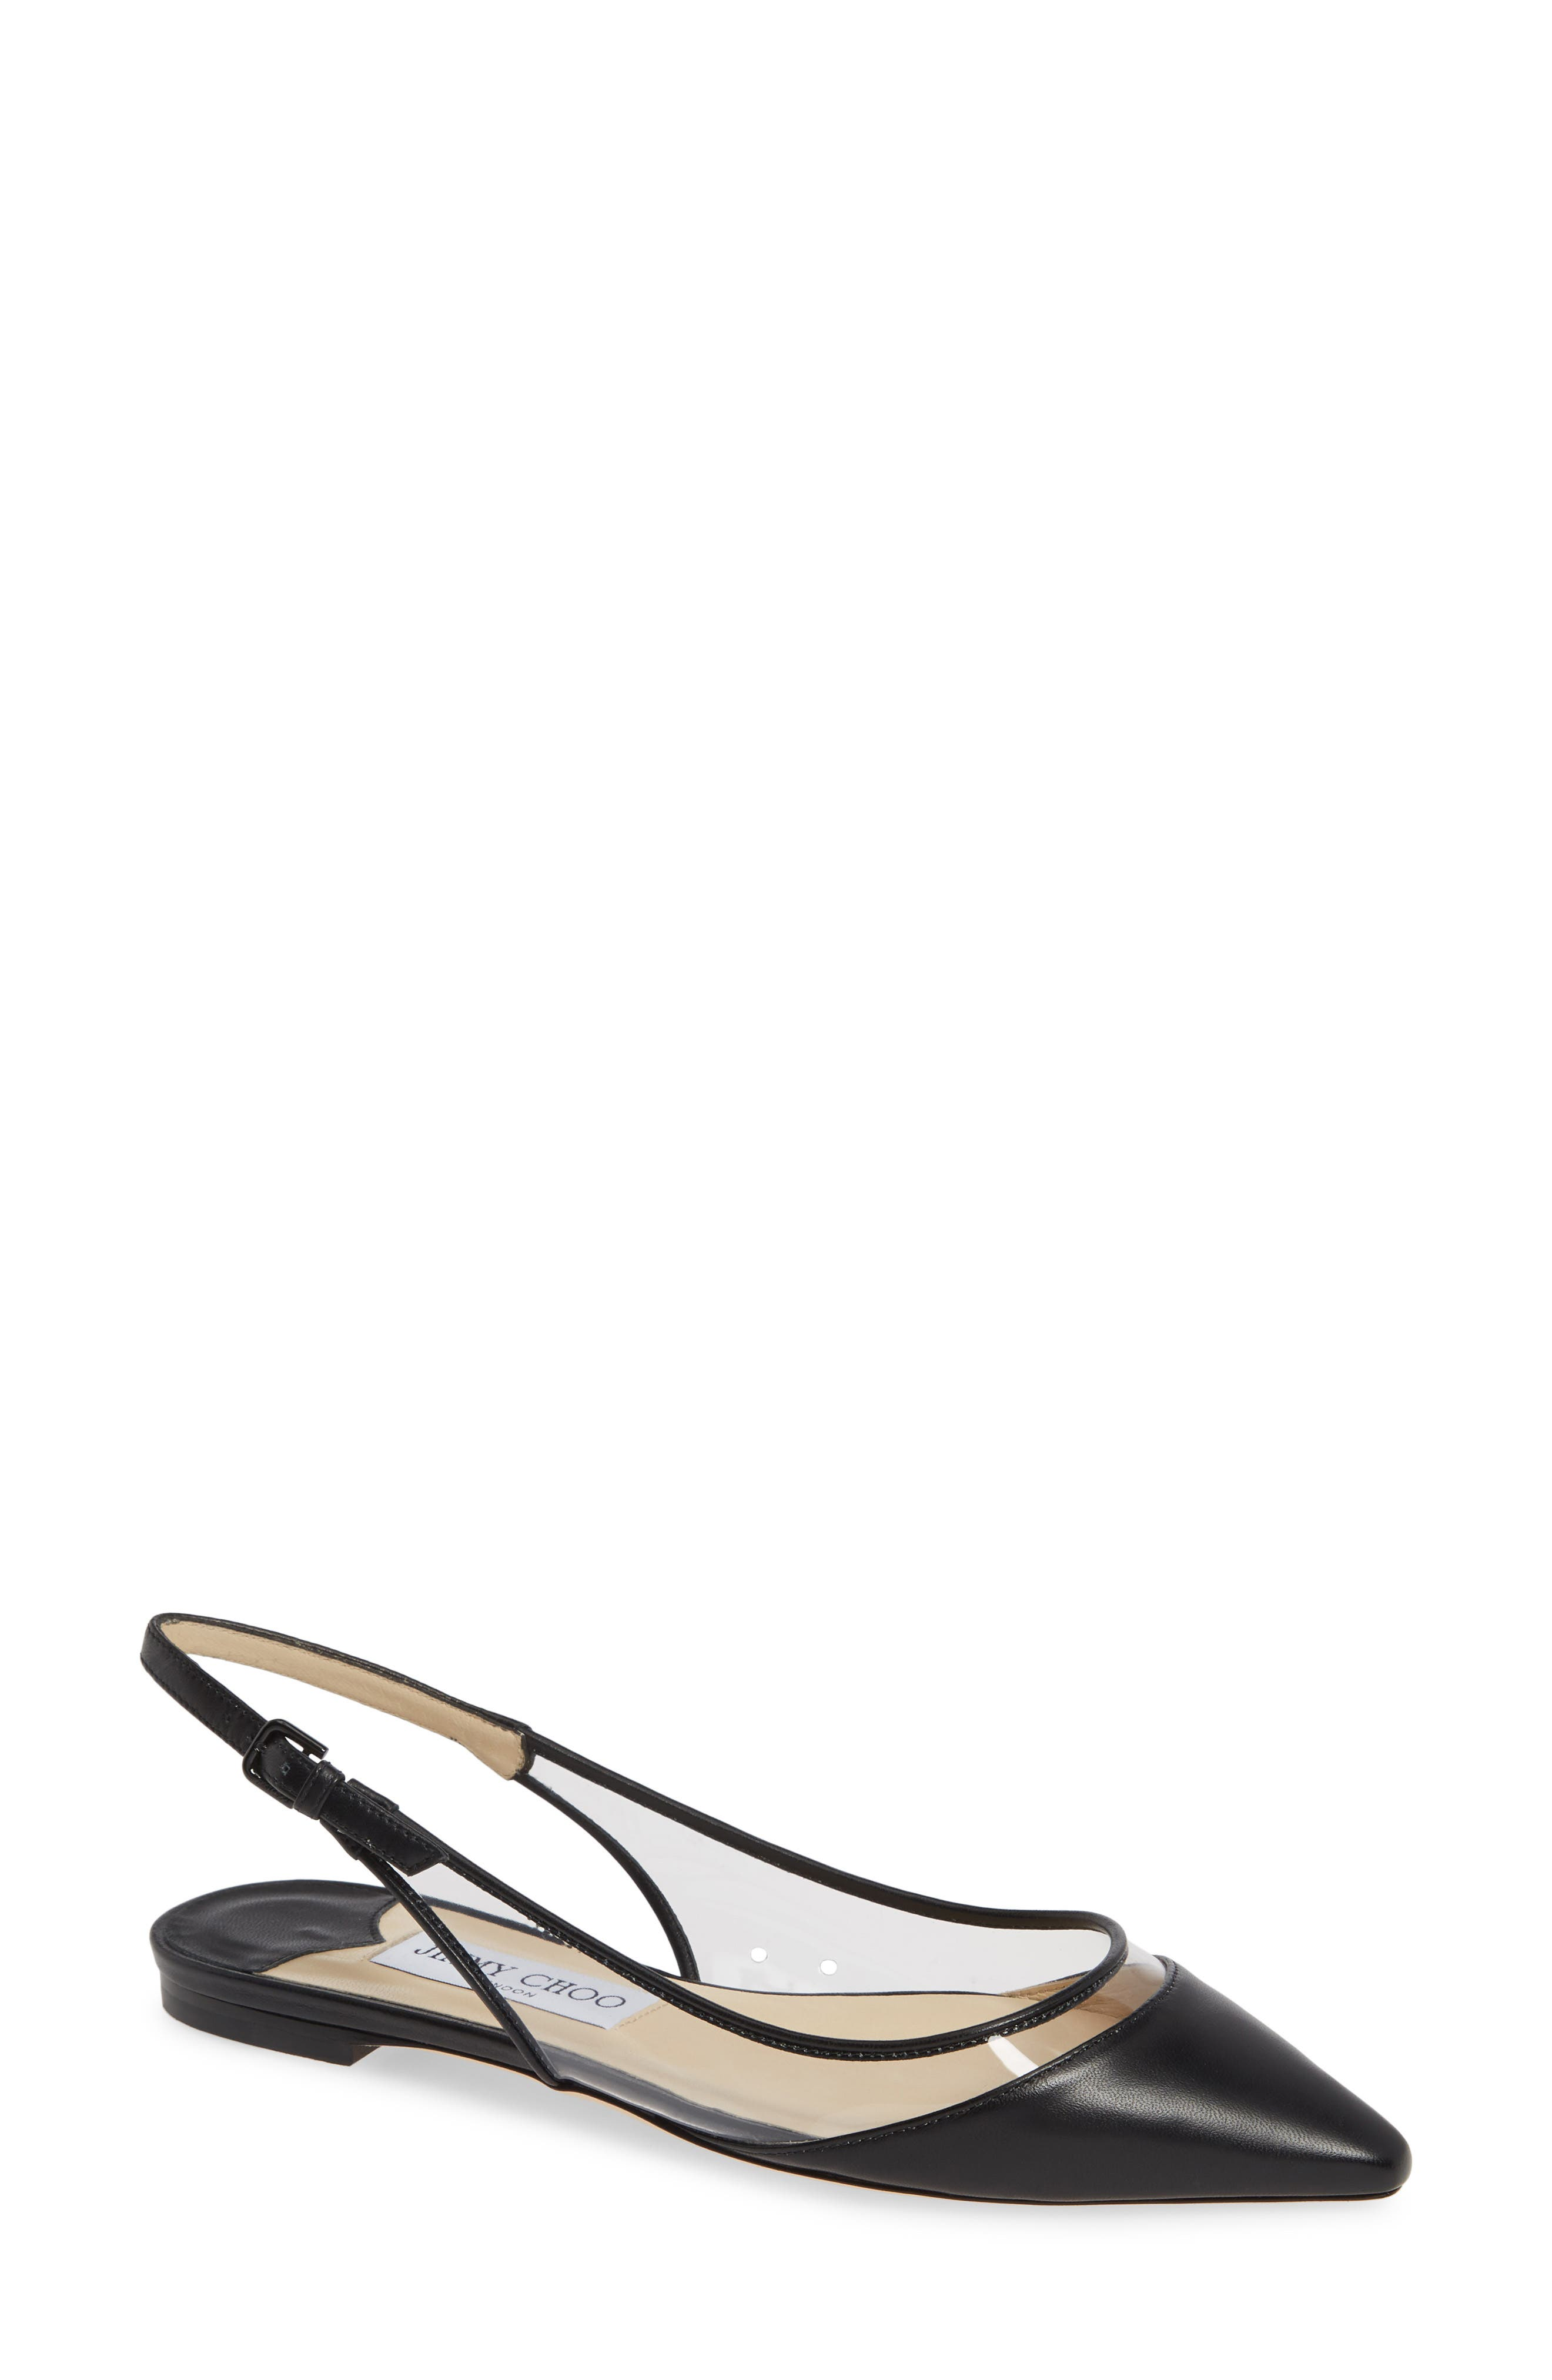 Jimmy Choo Erin Clear Slingback Flat, Black